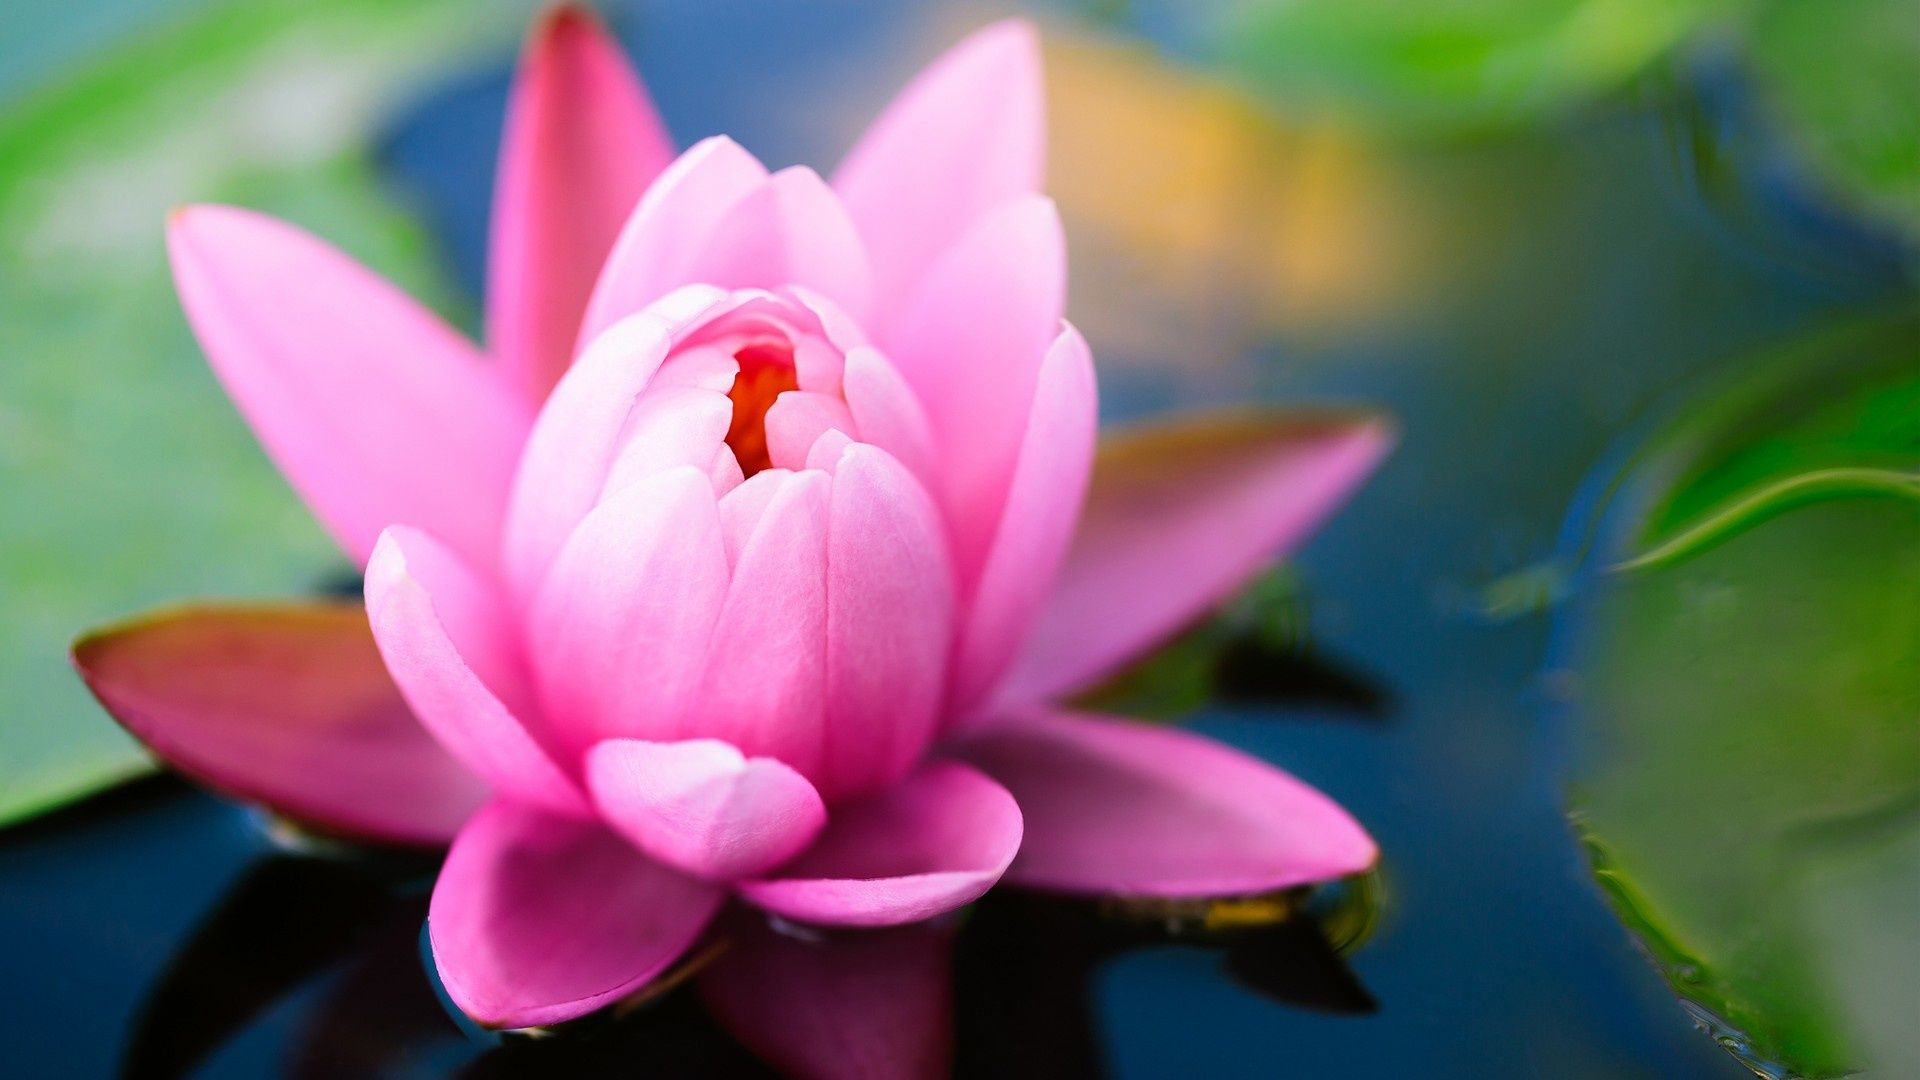 Lotus flower pond flowers wallpapers photographs pinterest lotus dhlflorist Choice Image